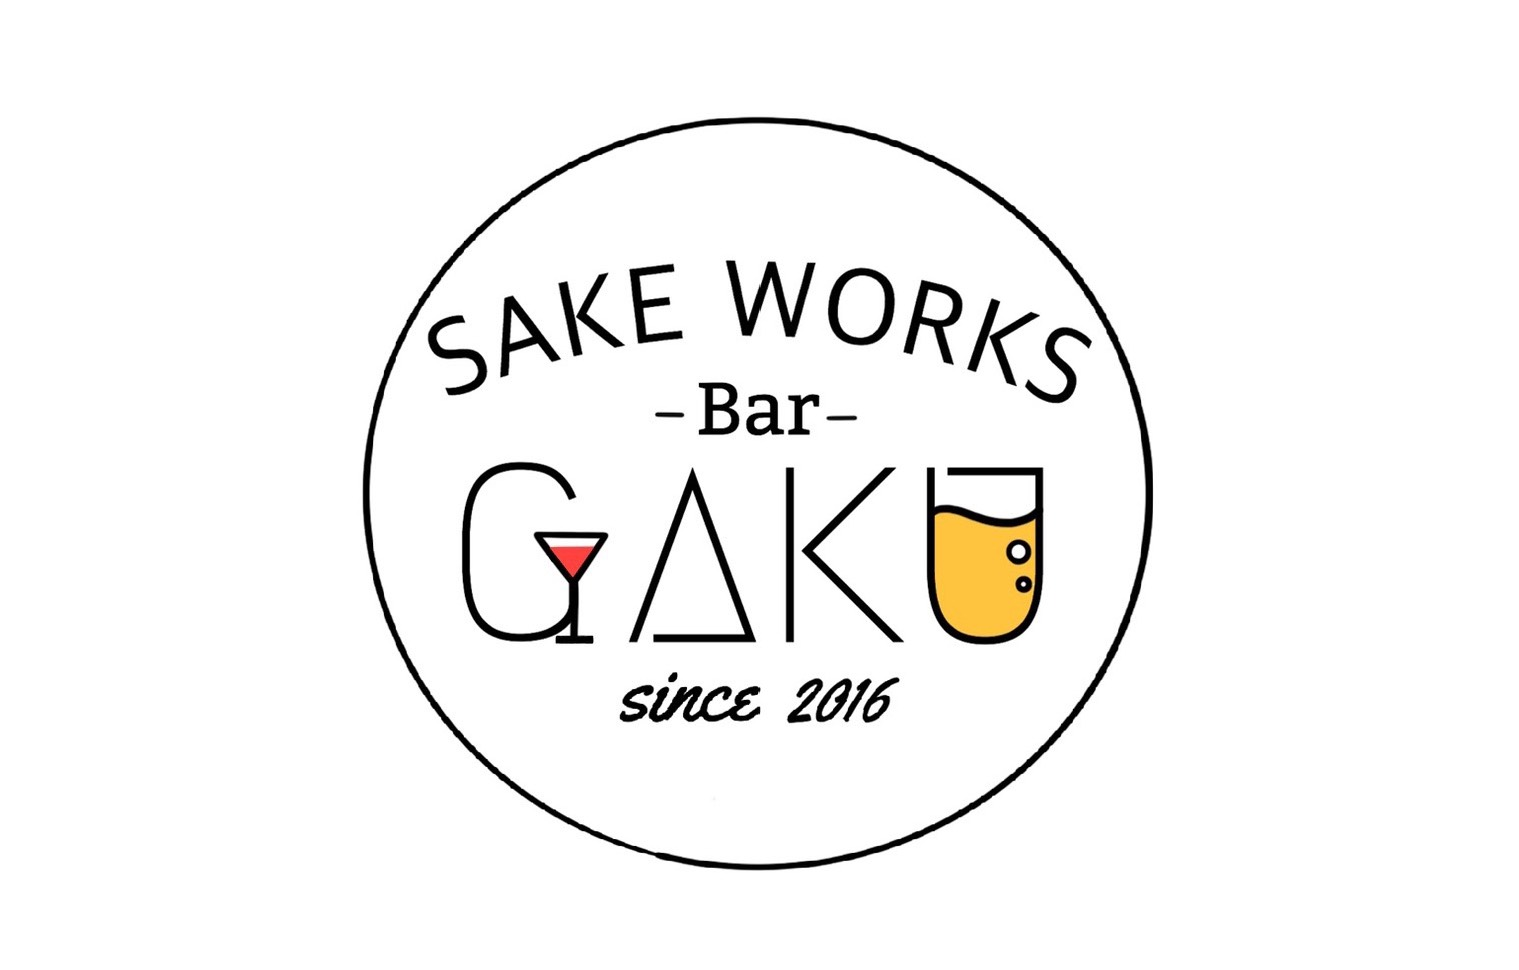 SAKE WORKS GAKU